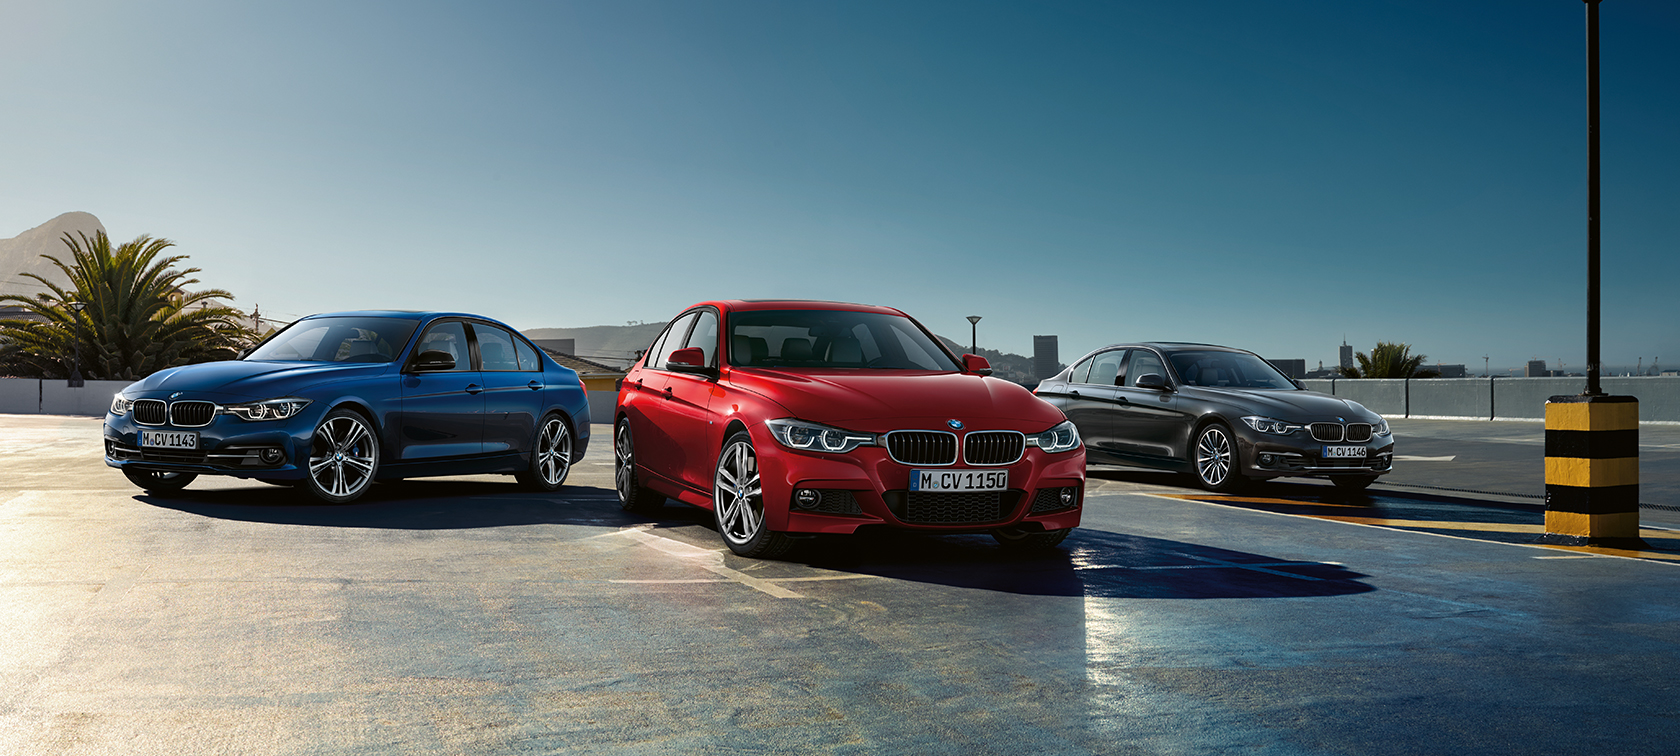 Lines & Equipment for the BMW 3 Series Sedan